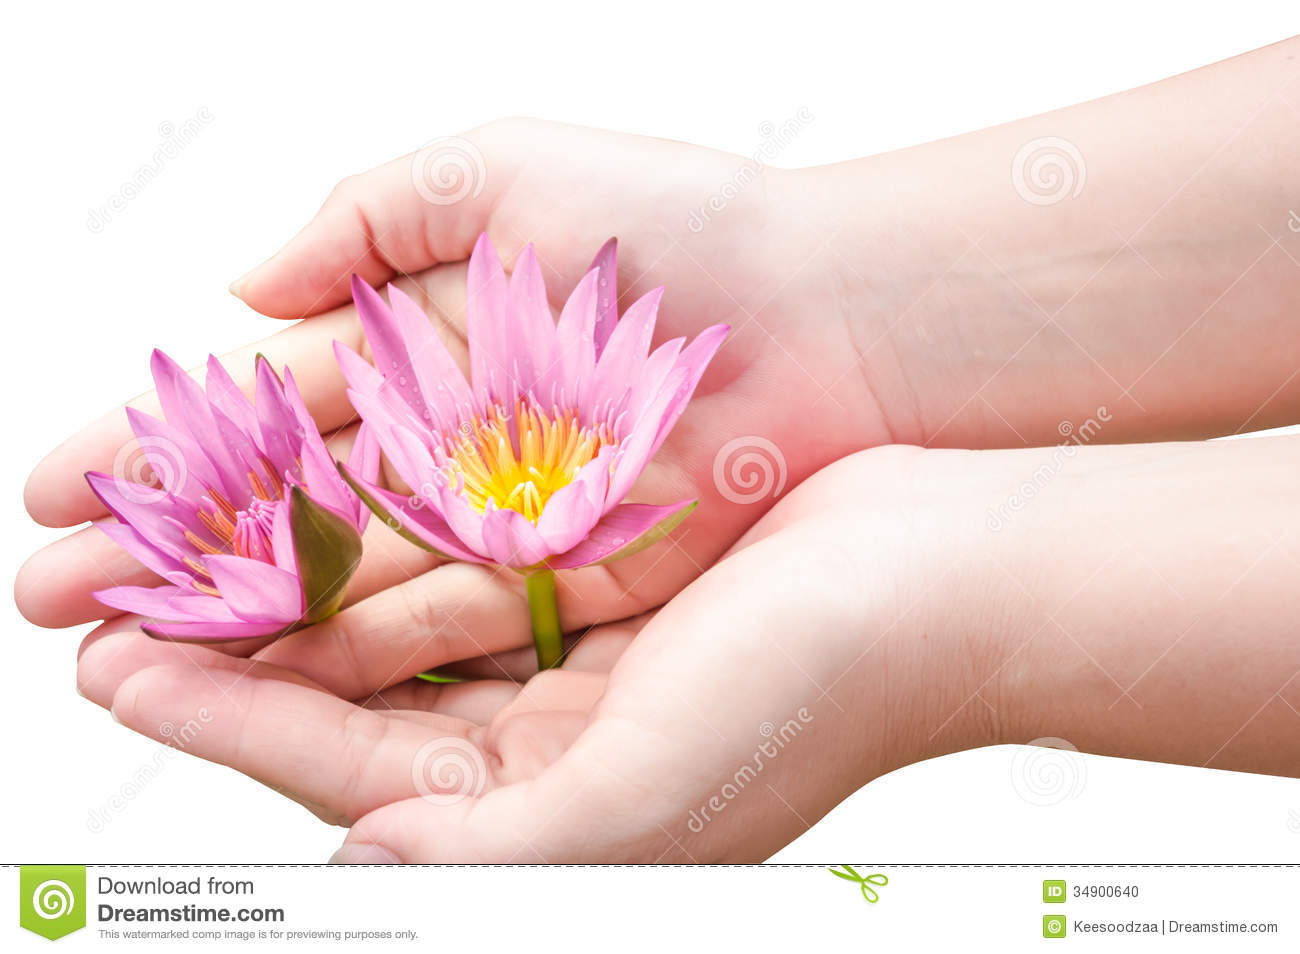 Lotus Flowers On Hand Stock Photo Image Of Charming 34900640